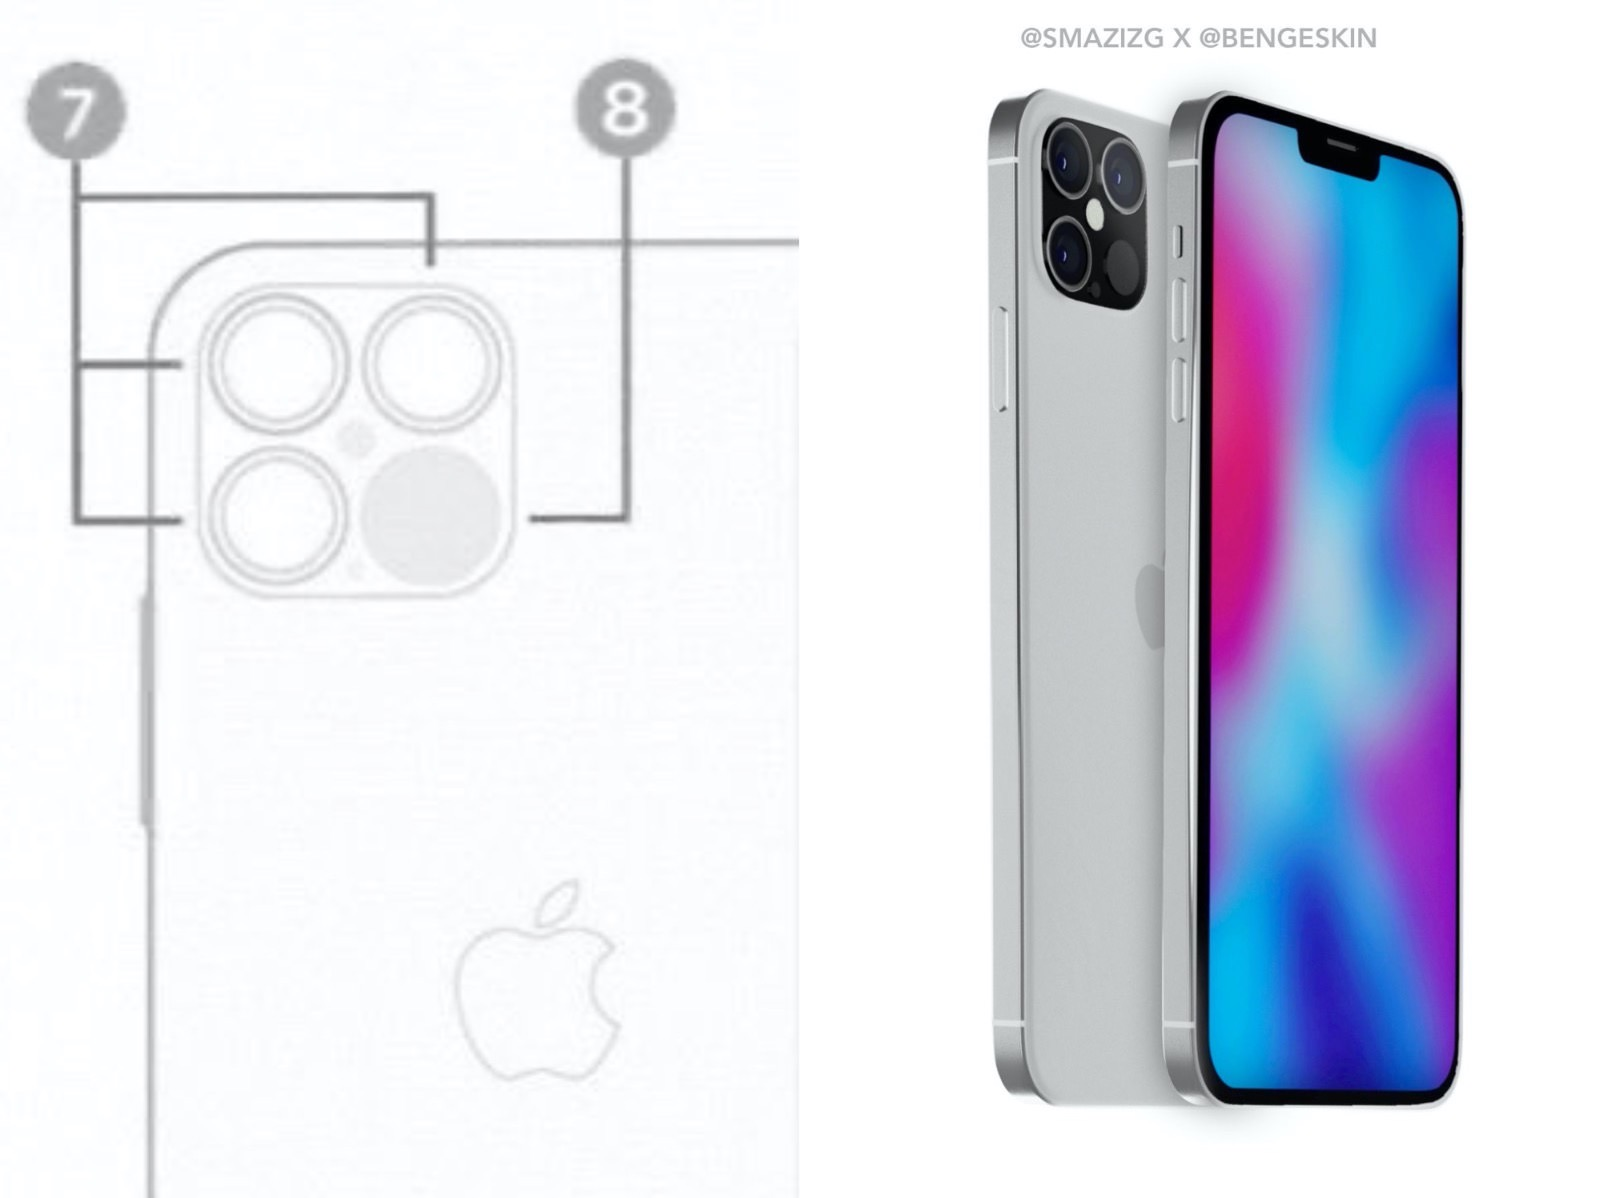 Iphone 12 camera leak and rending